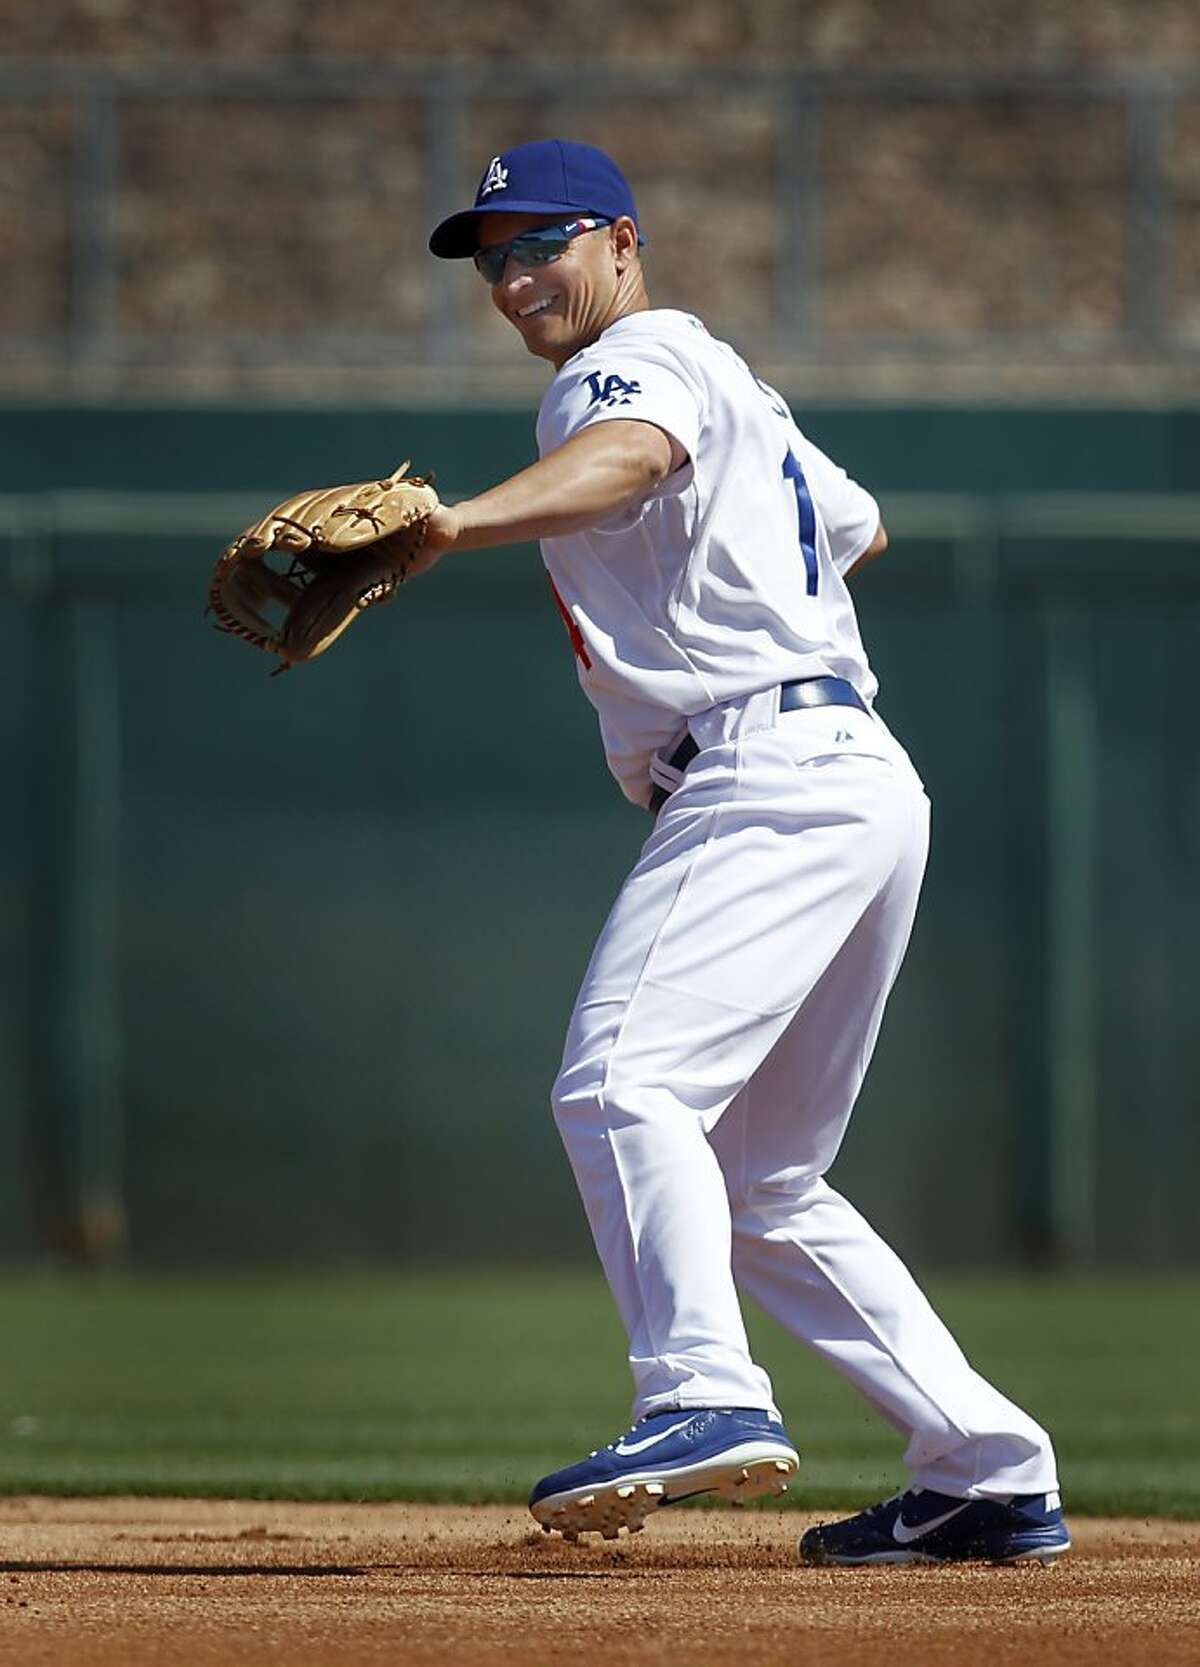 Former Oakland second baseman Mark Ellis warms up in the 1st inning of the A's Cactus League spring training game against the Los Angeles Dodgers in Glendale, Ariz. on Thursday, March 8, 2012.